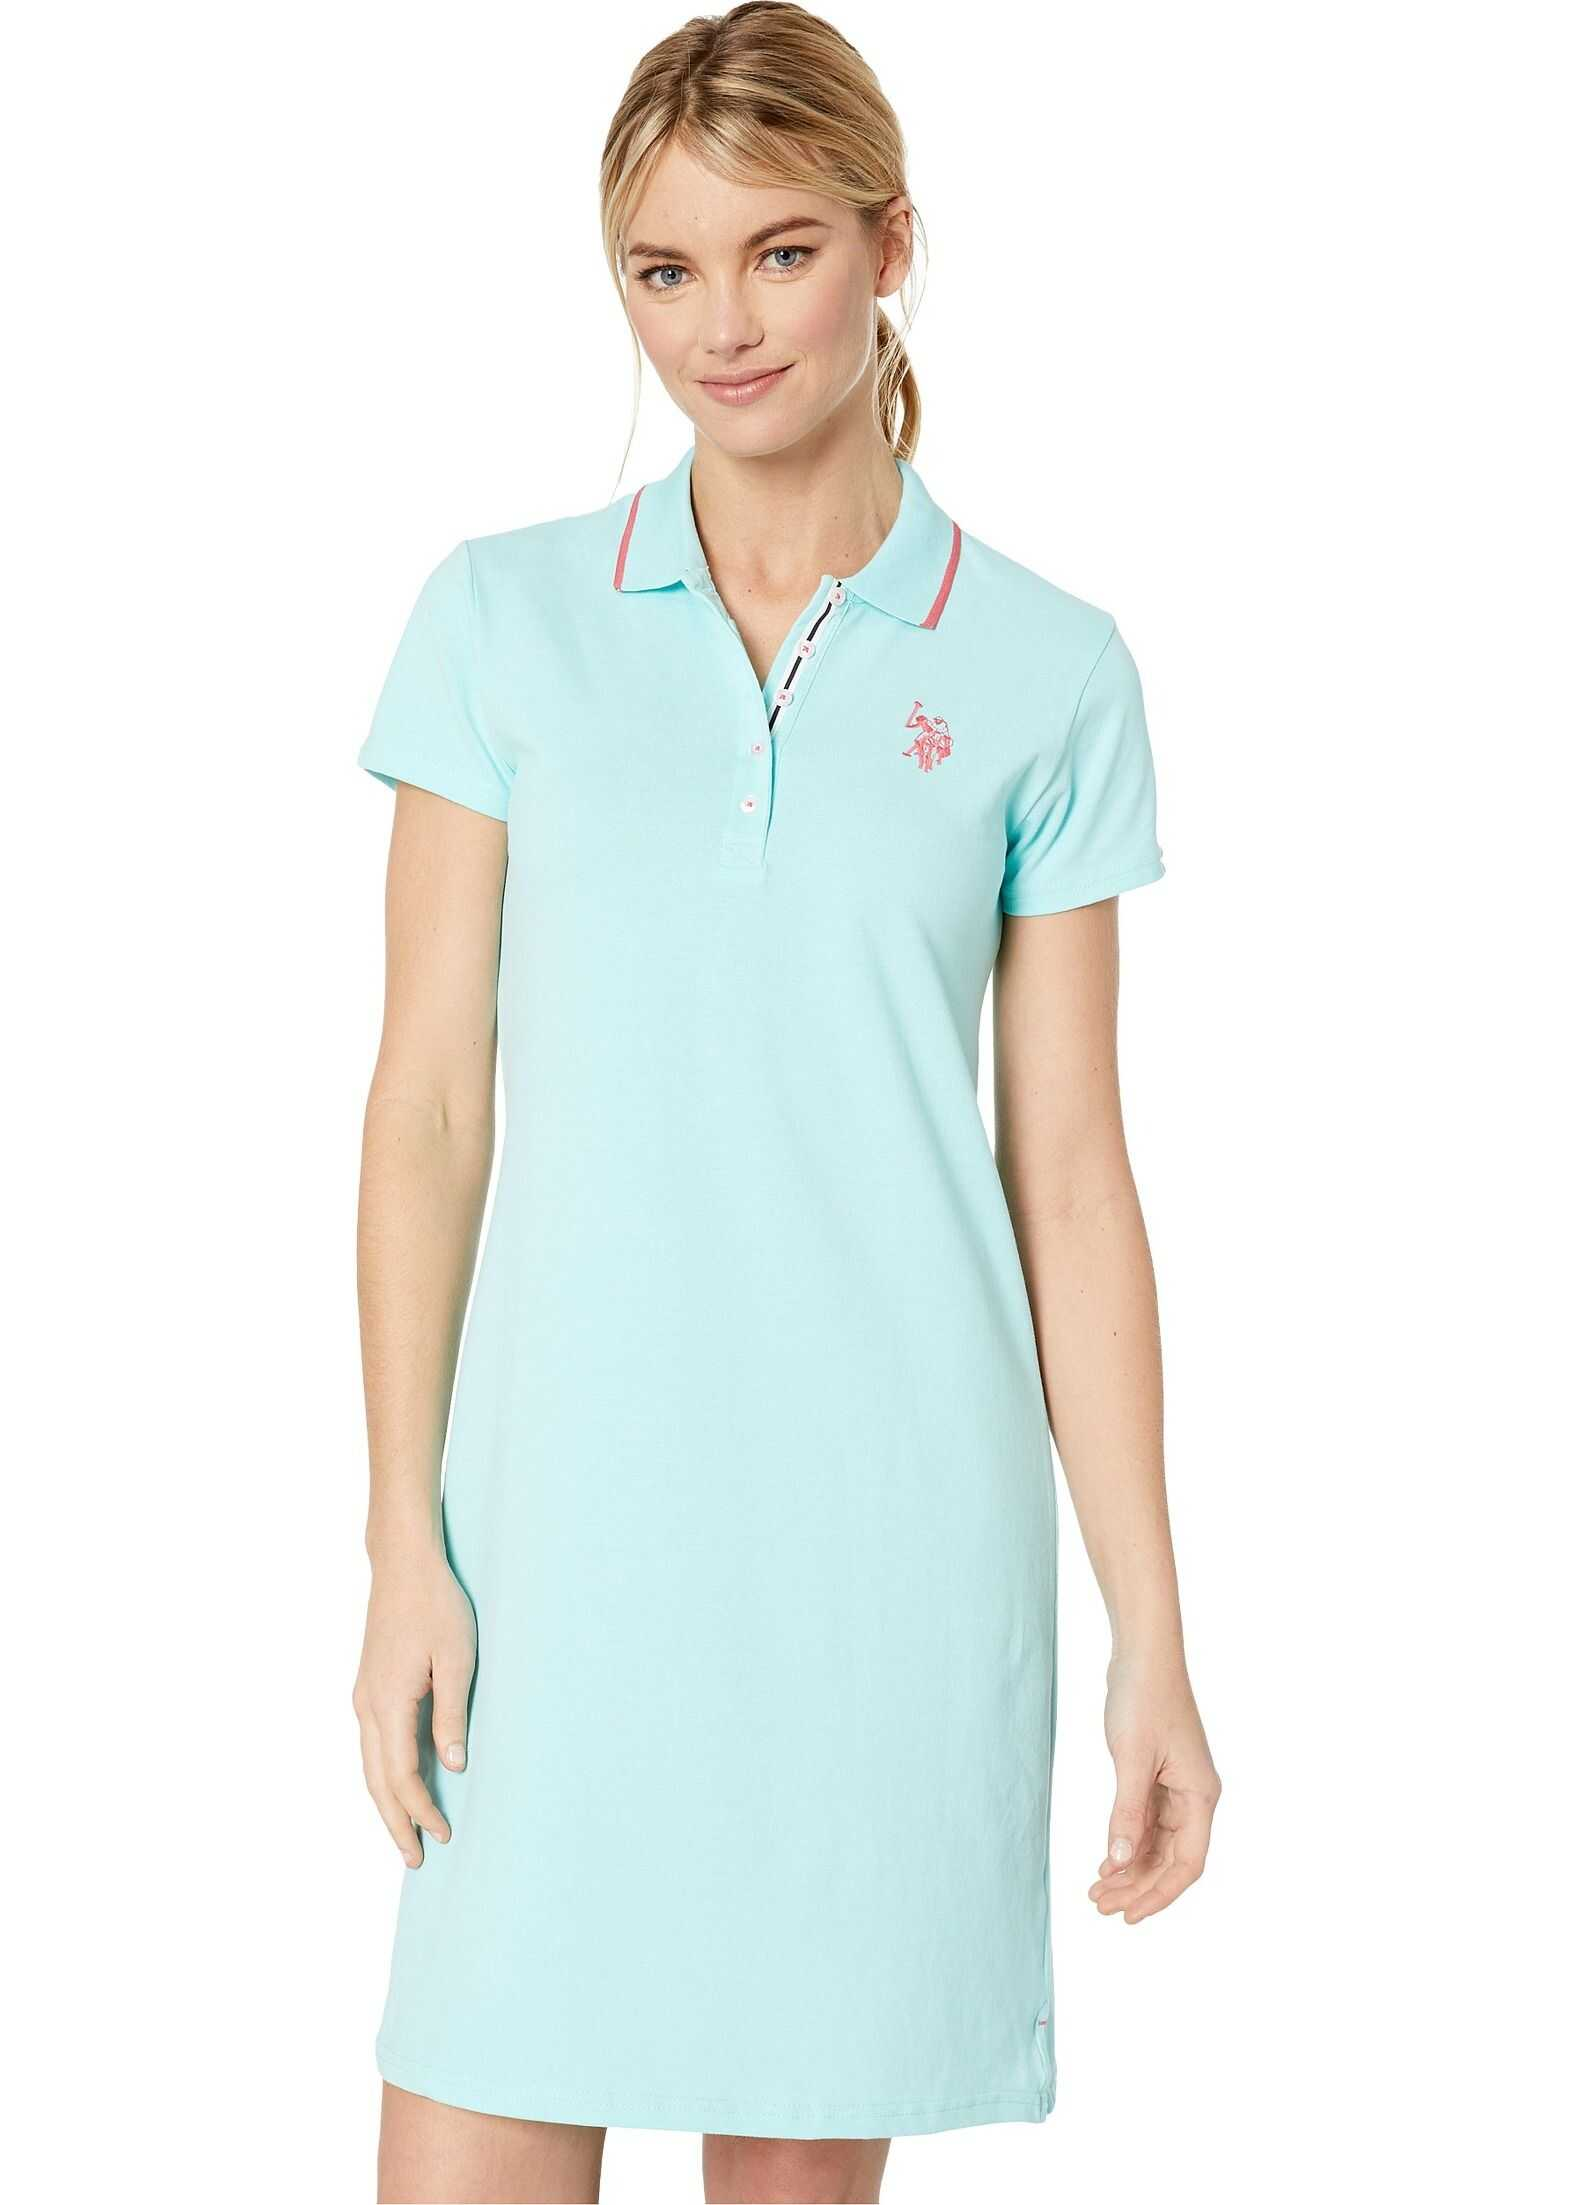 U.S. POLO ASSN. Plain Polo Dress Surf Jack Aqua